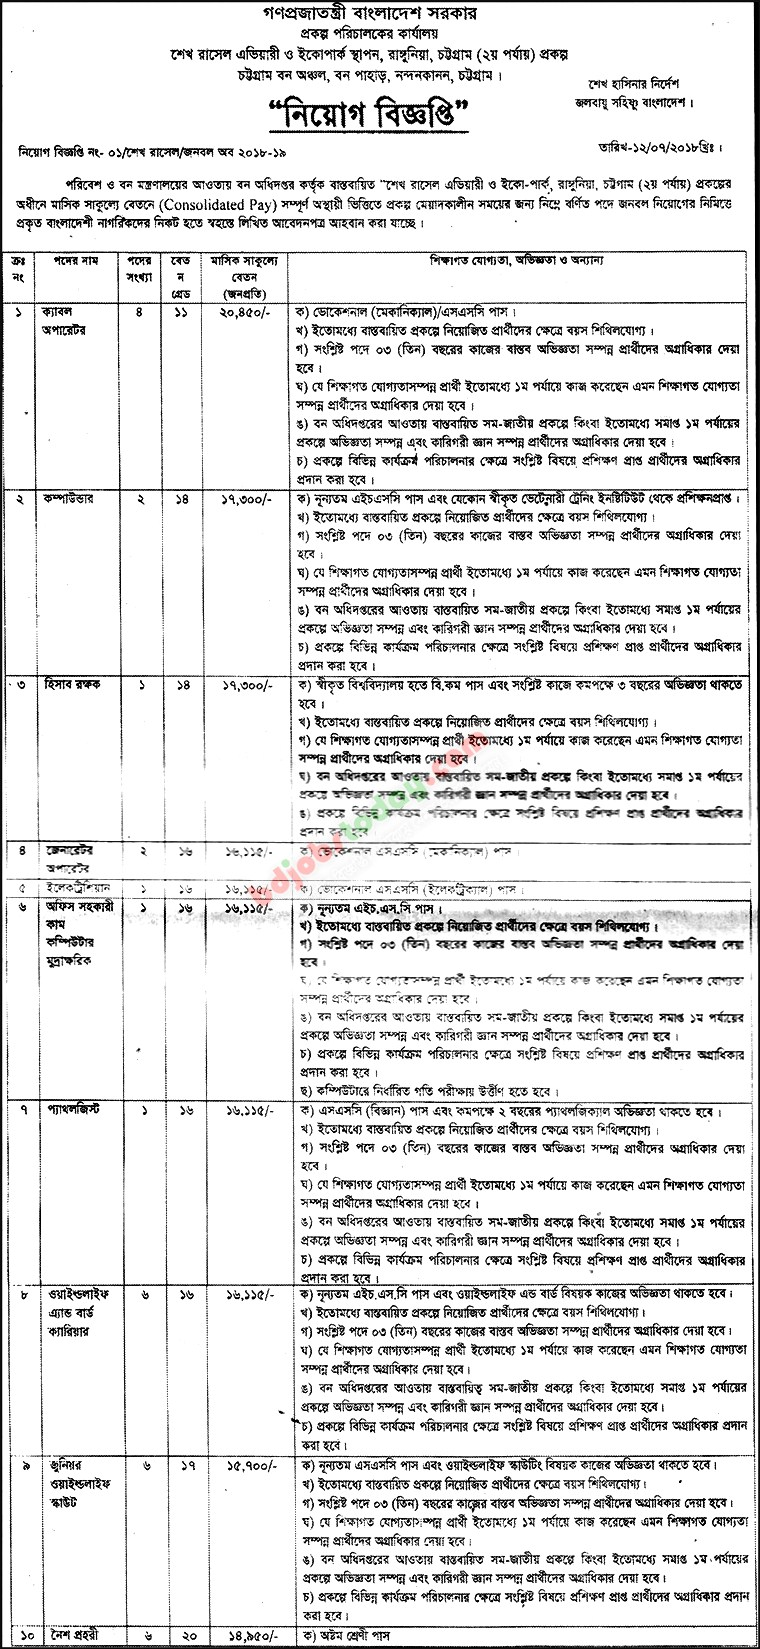 Office of Project Director, Chittagong Forest Region jobs